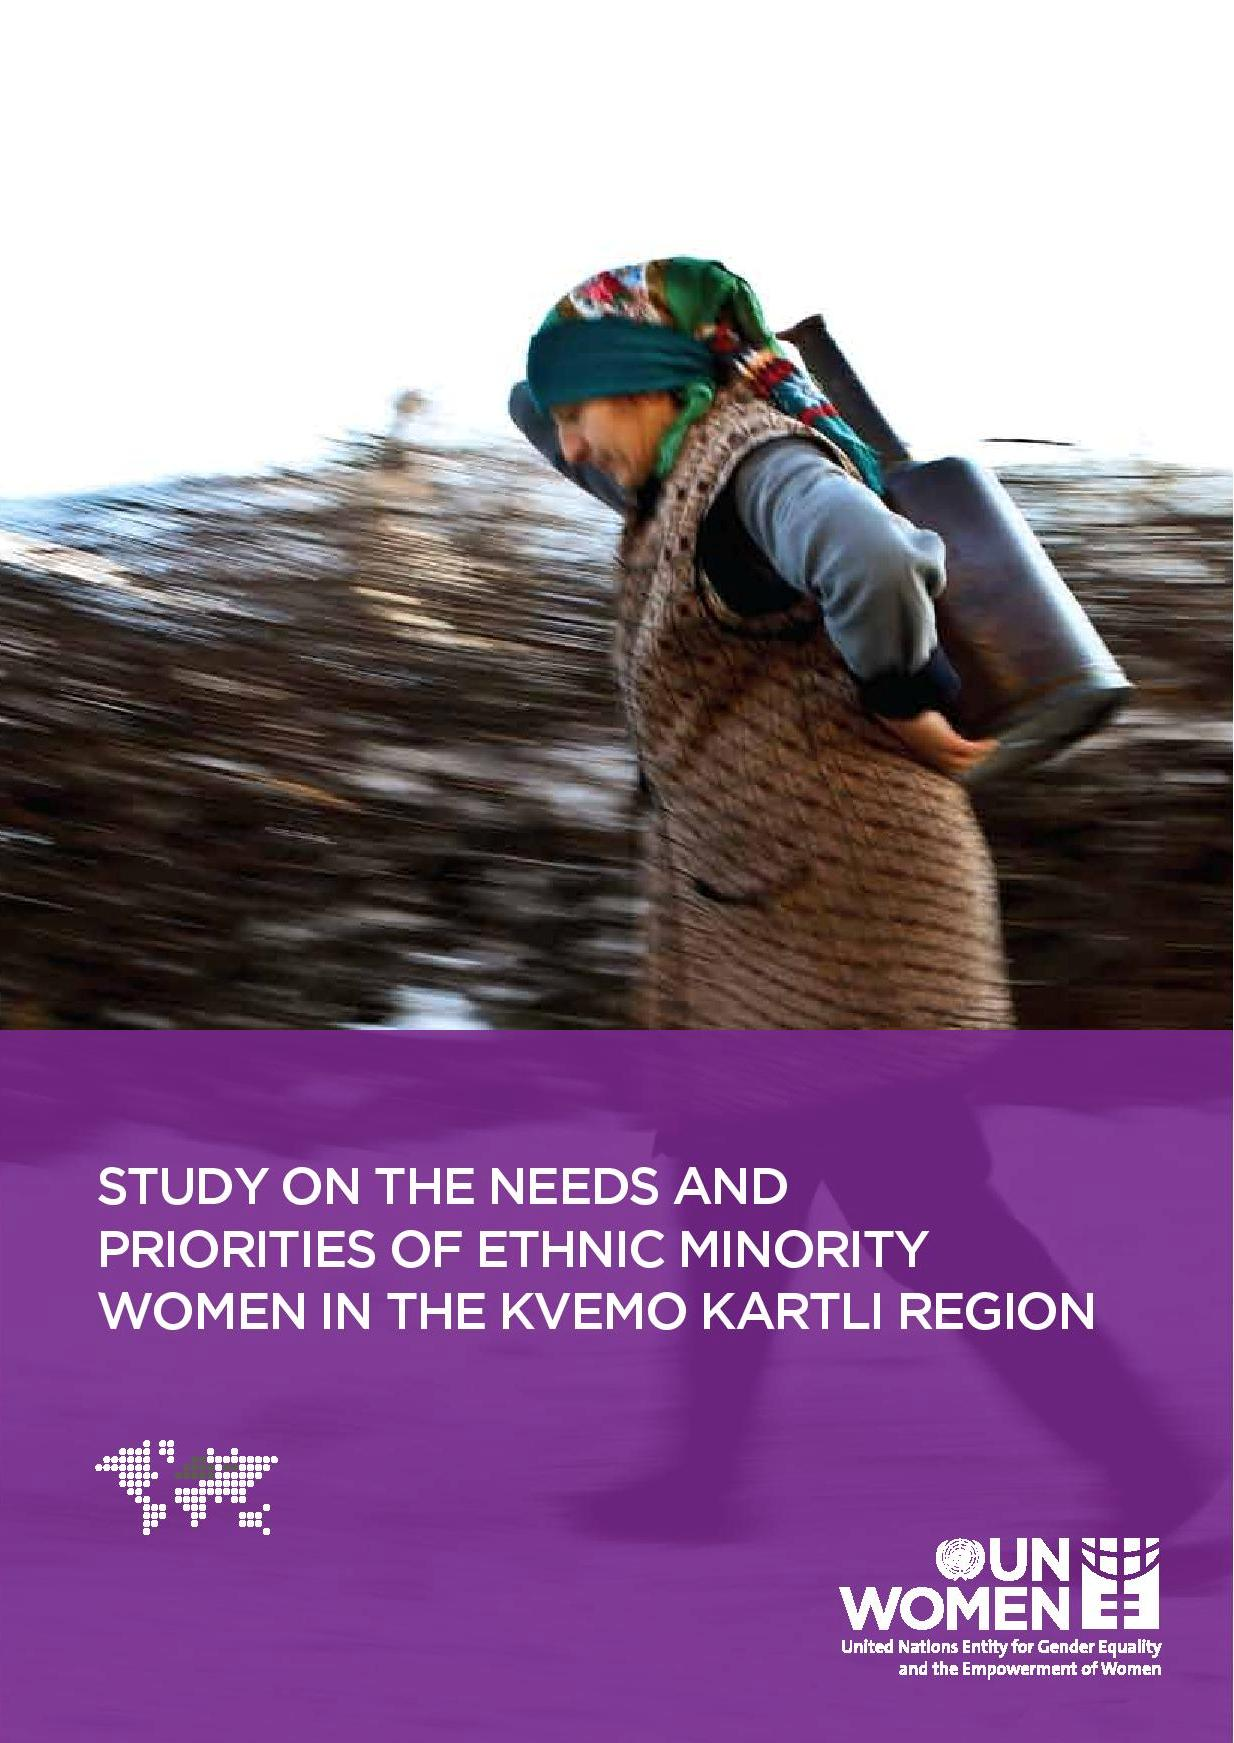 Study on the Needs and Priorities of Ethnic Minority Women in the Kvemo Kartli Region